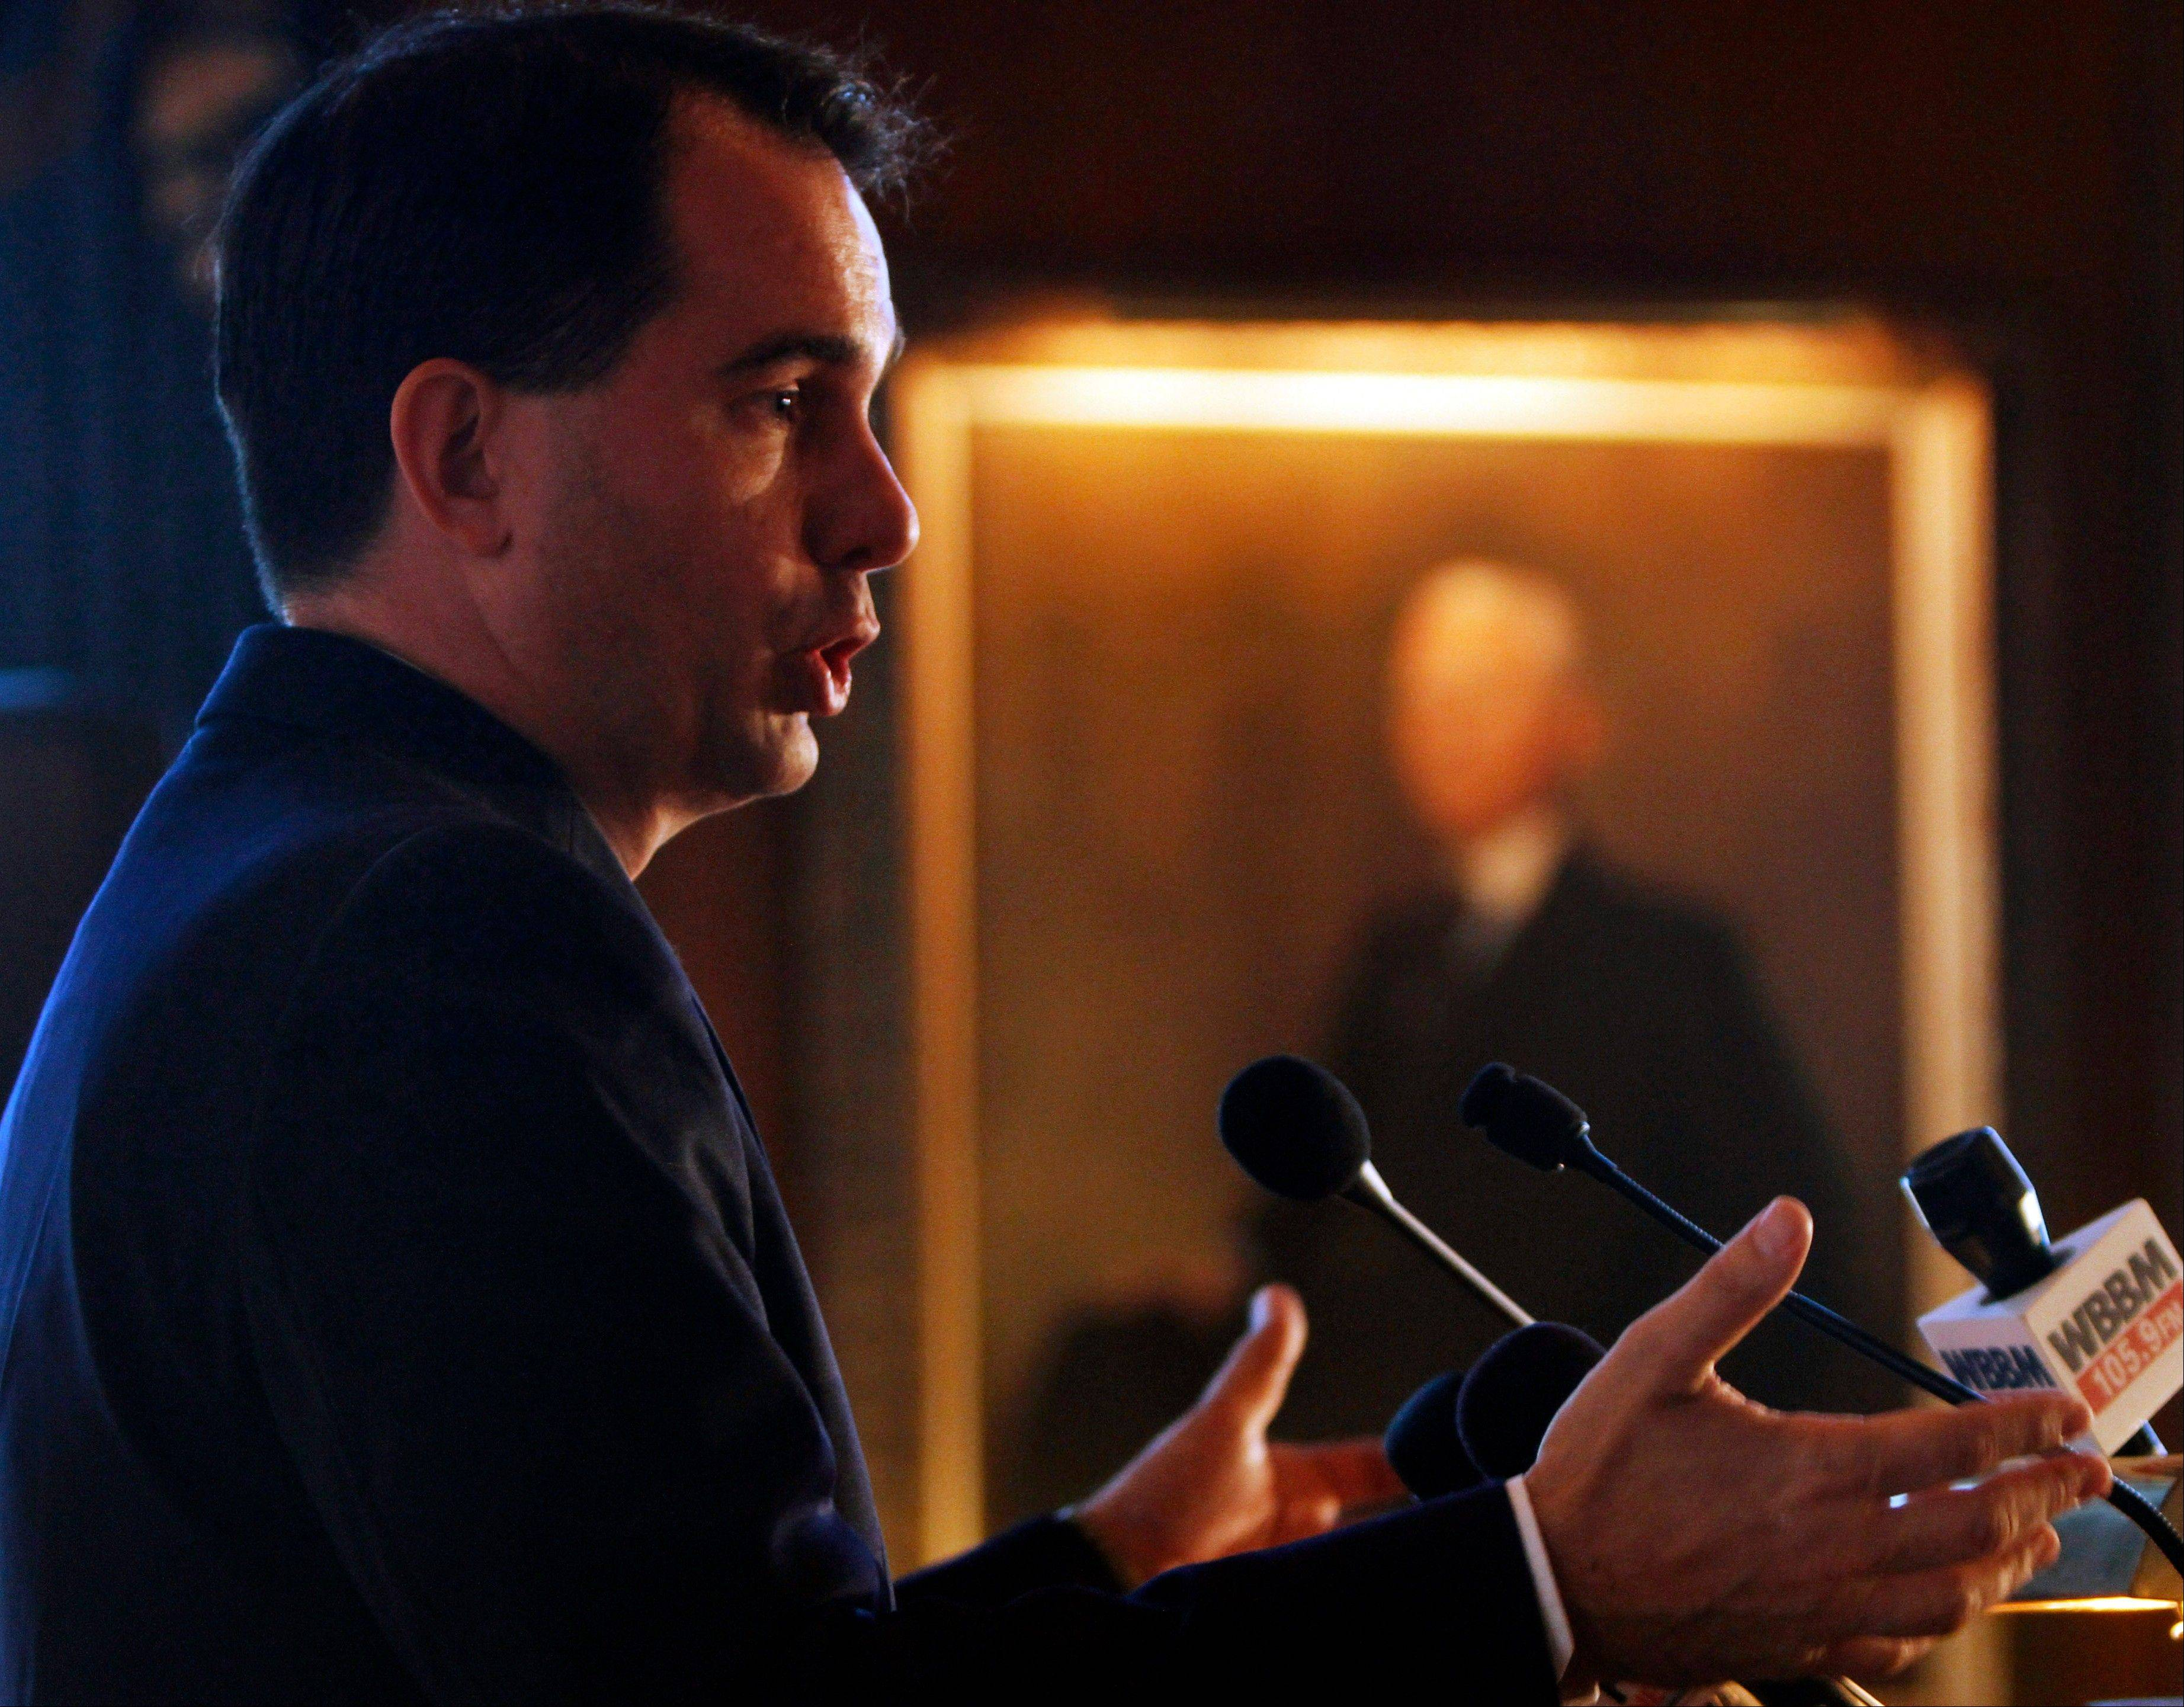 Wisconsin Gov. Scott Walker speaks at a news conference Monday after his address on pension reform and fiscal responsibility to the Commercial Club of Chicago.